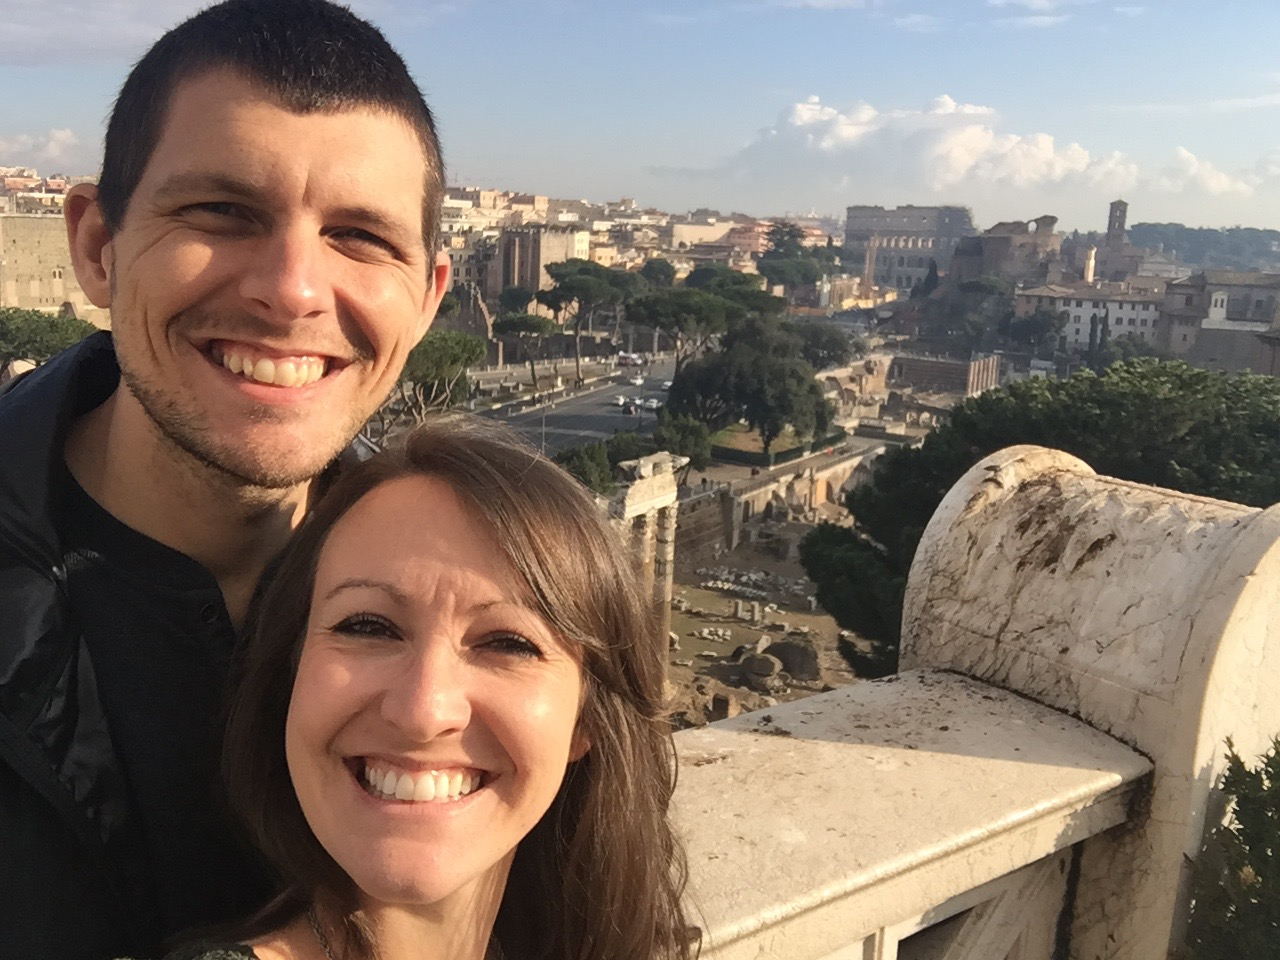 Overlooking beautiful Rome, Italy!